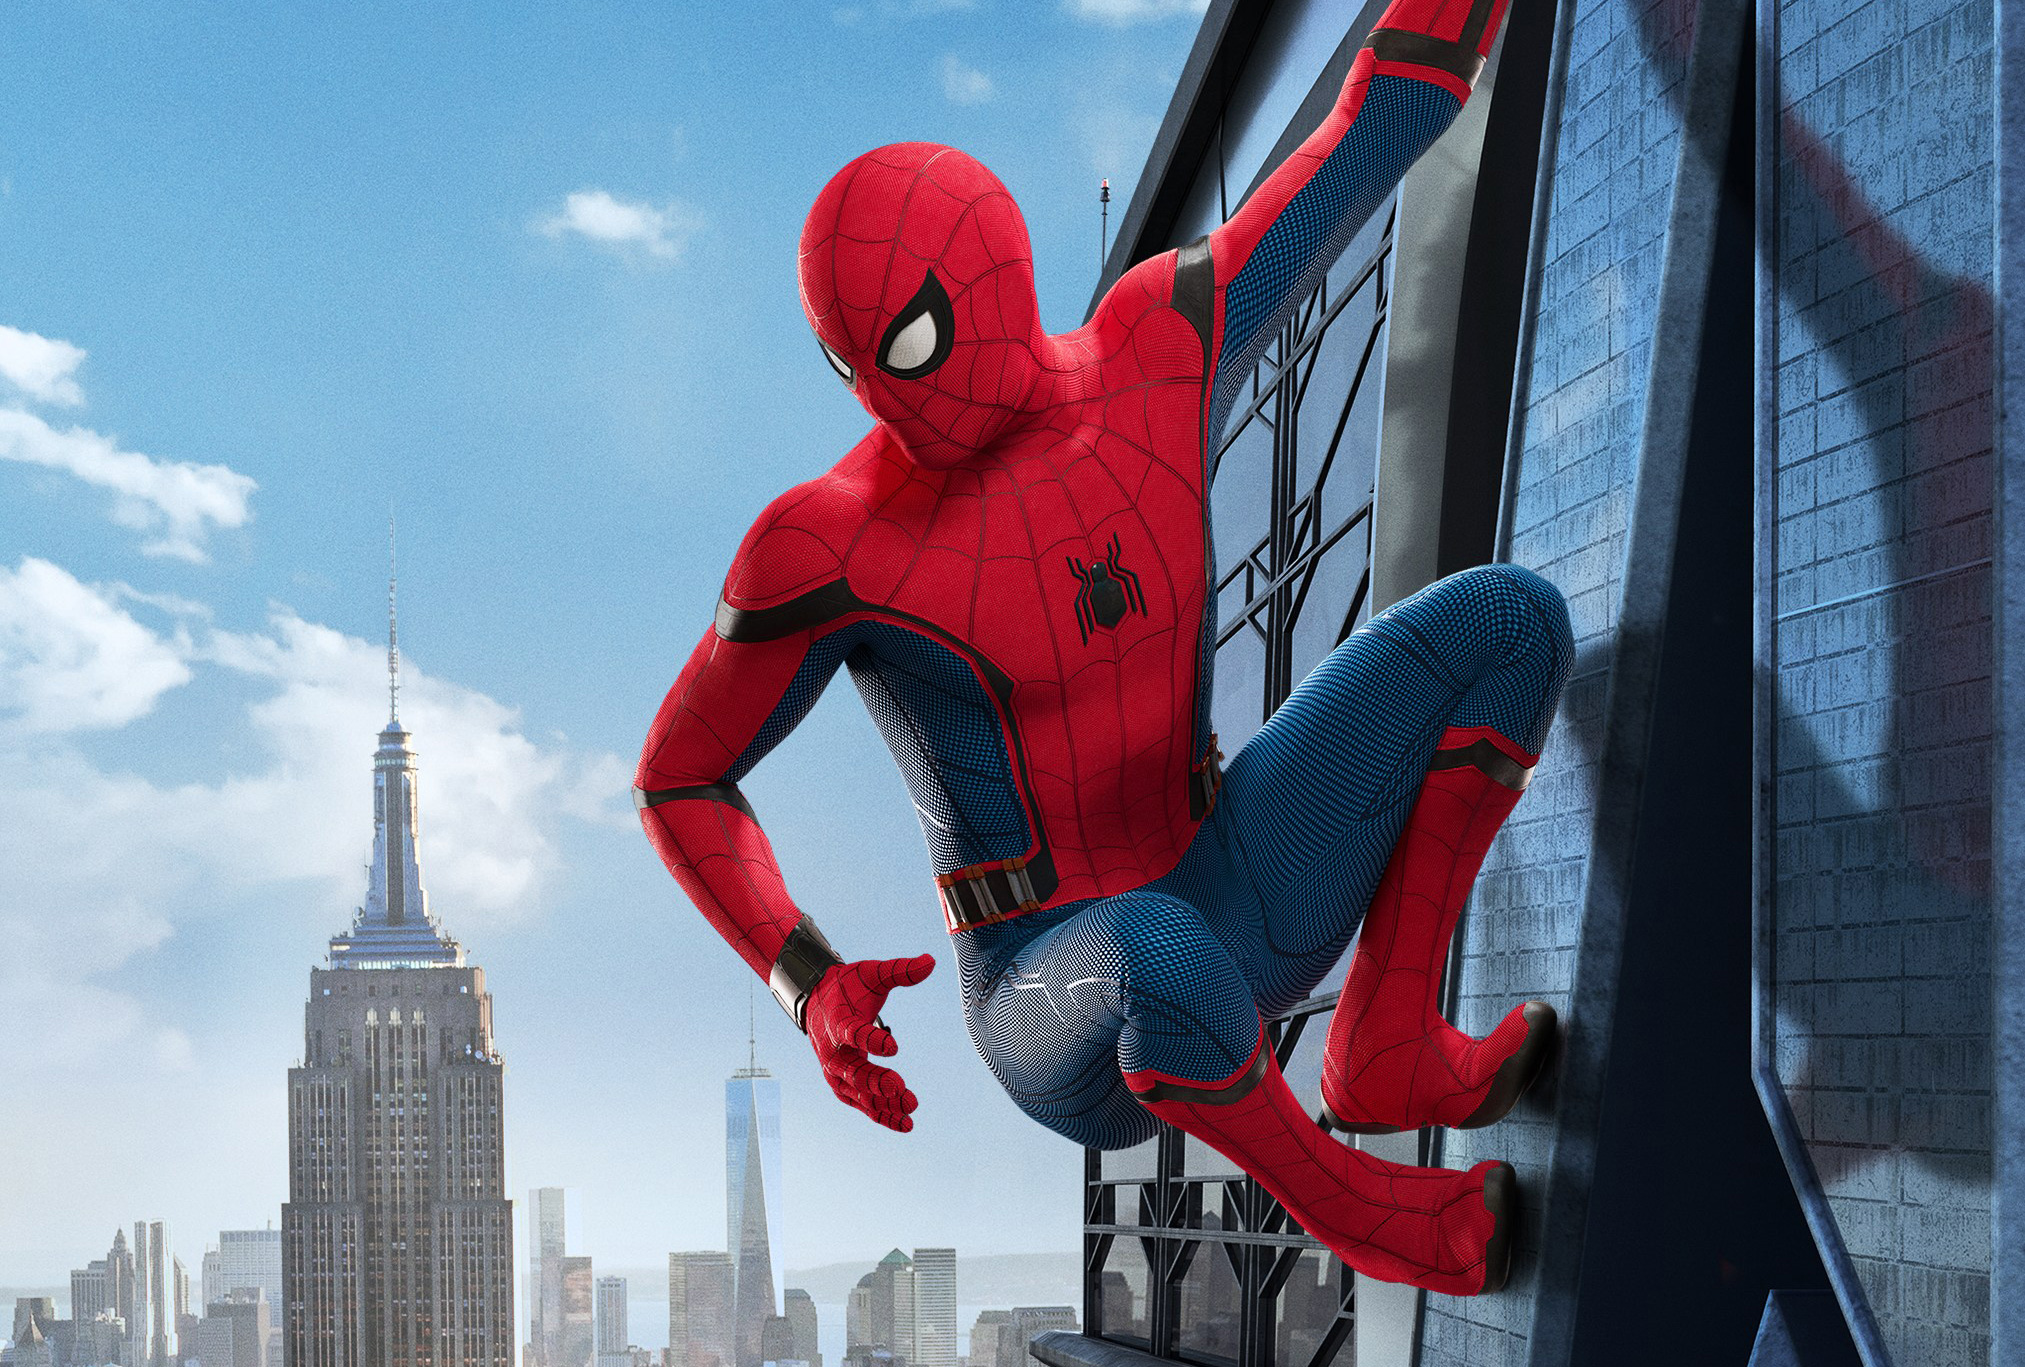 Spiderman homecoming hd movies 4k wallpapers images - New spiderman movie wallpaper ...